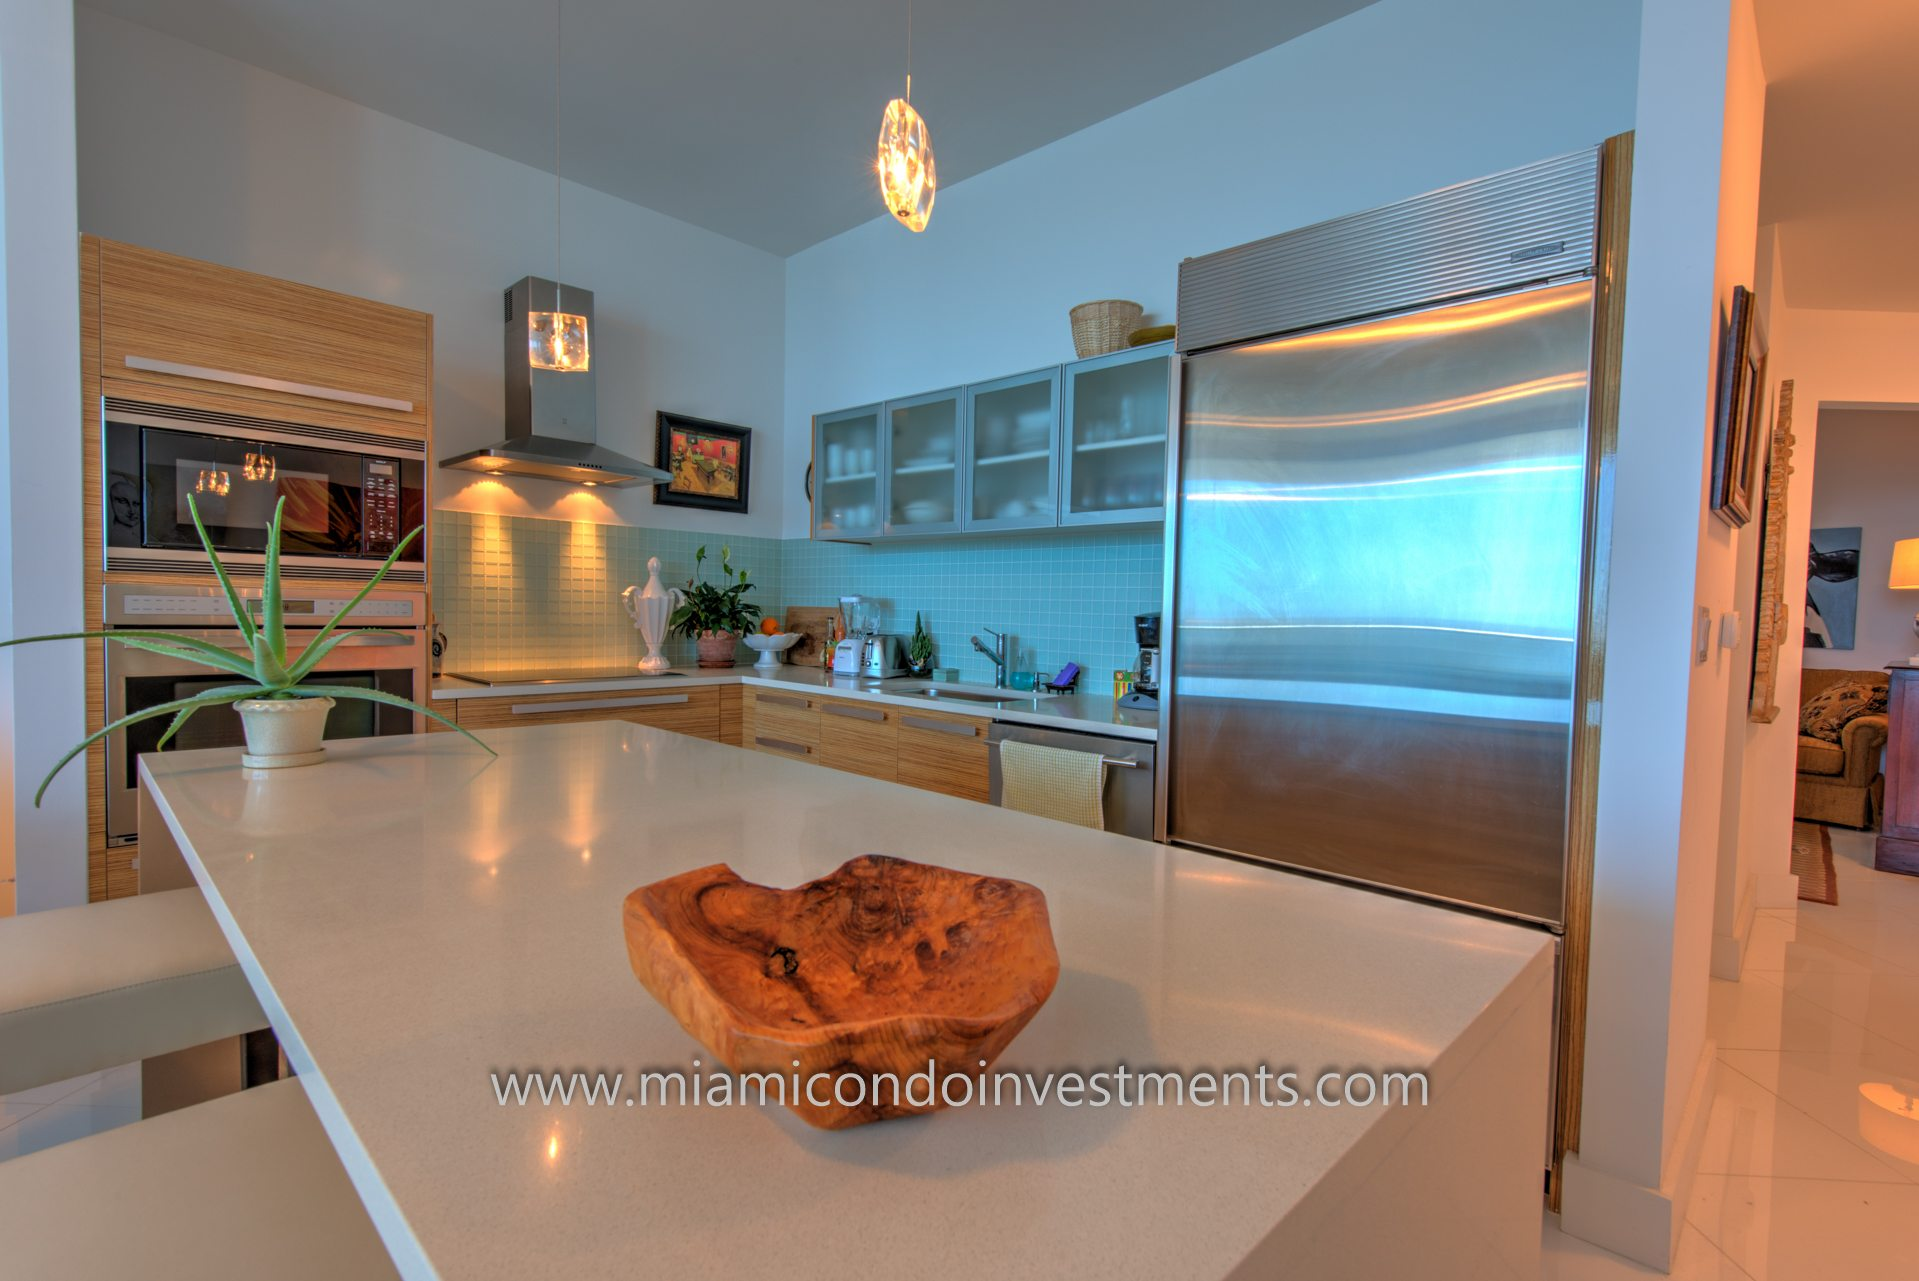 Italian wood cabinetry and stone countertops.